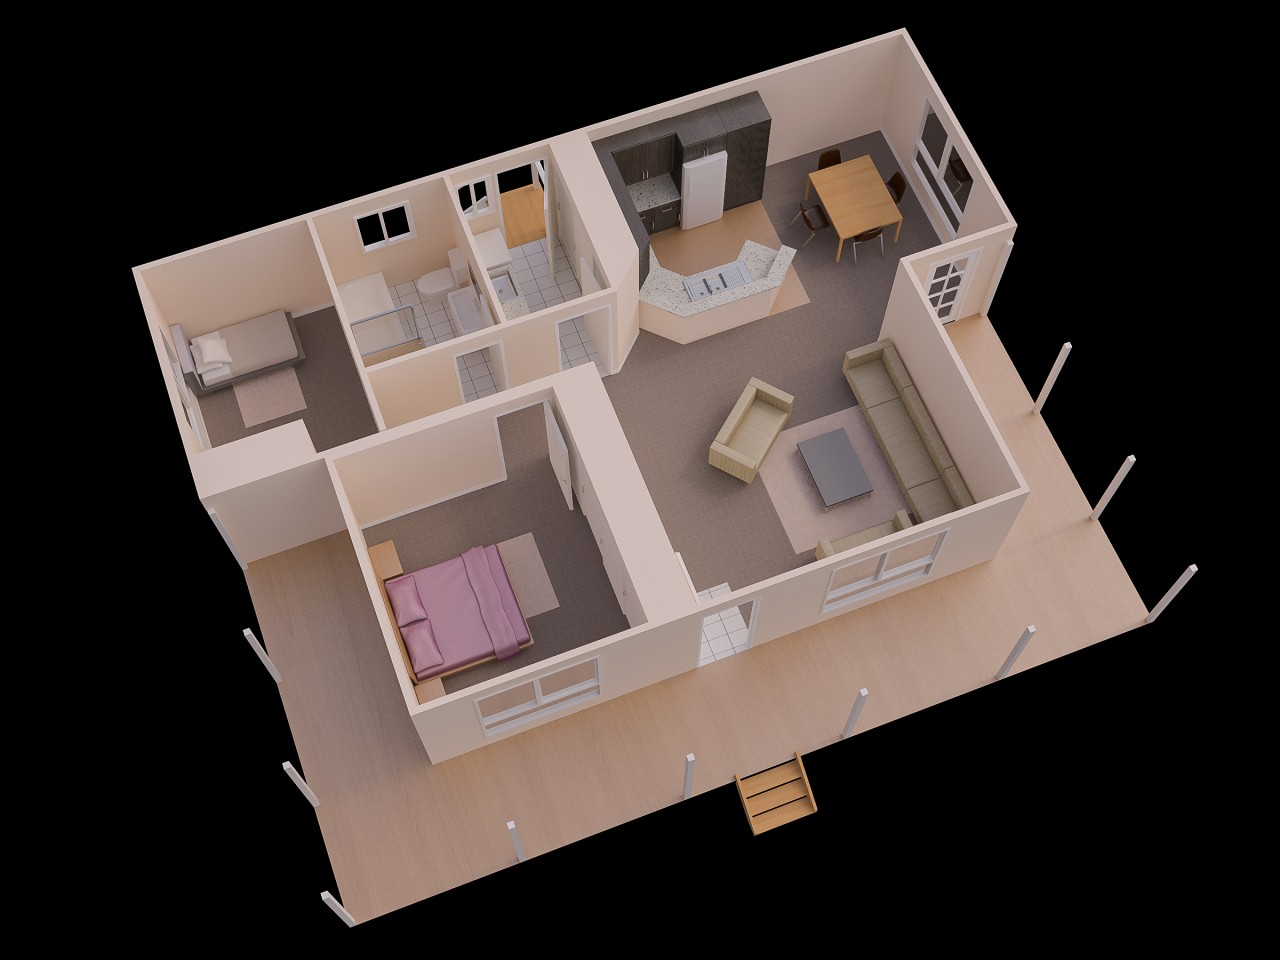 25 source westbuilt - Simple House Plan With 2 Bedrooms 3d